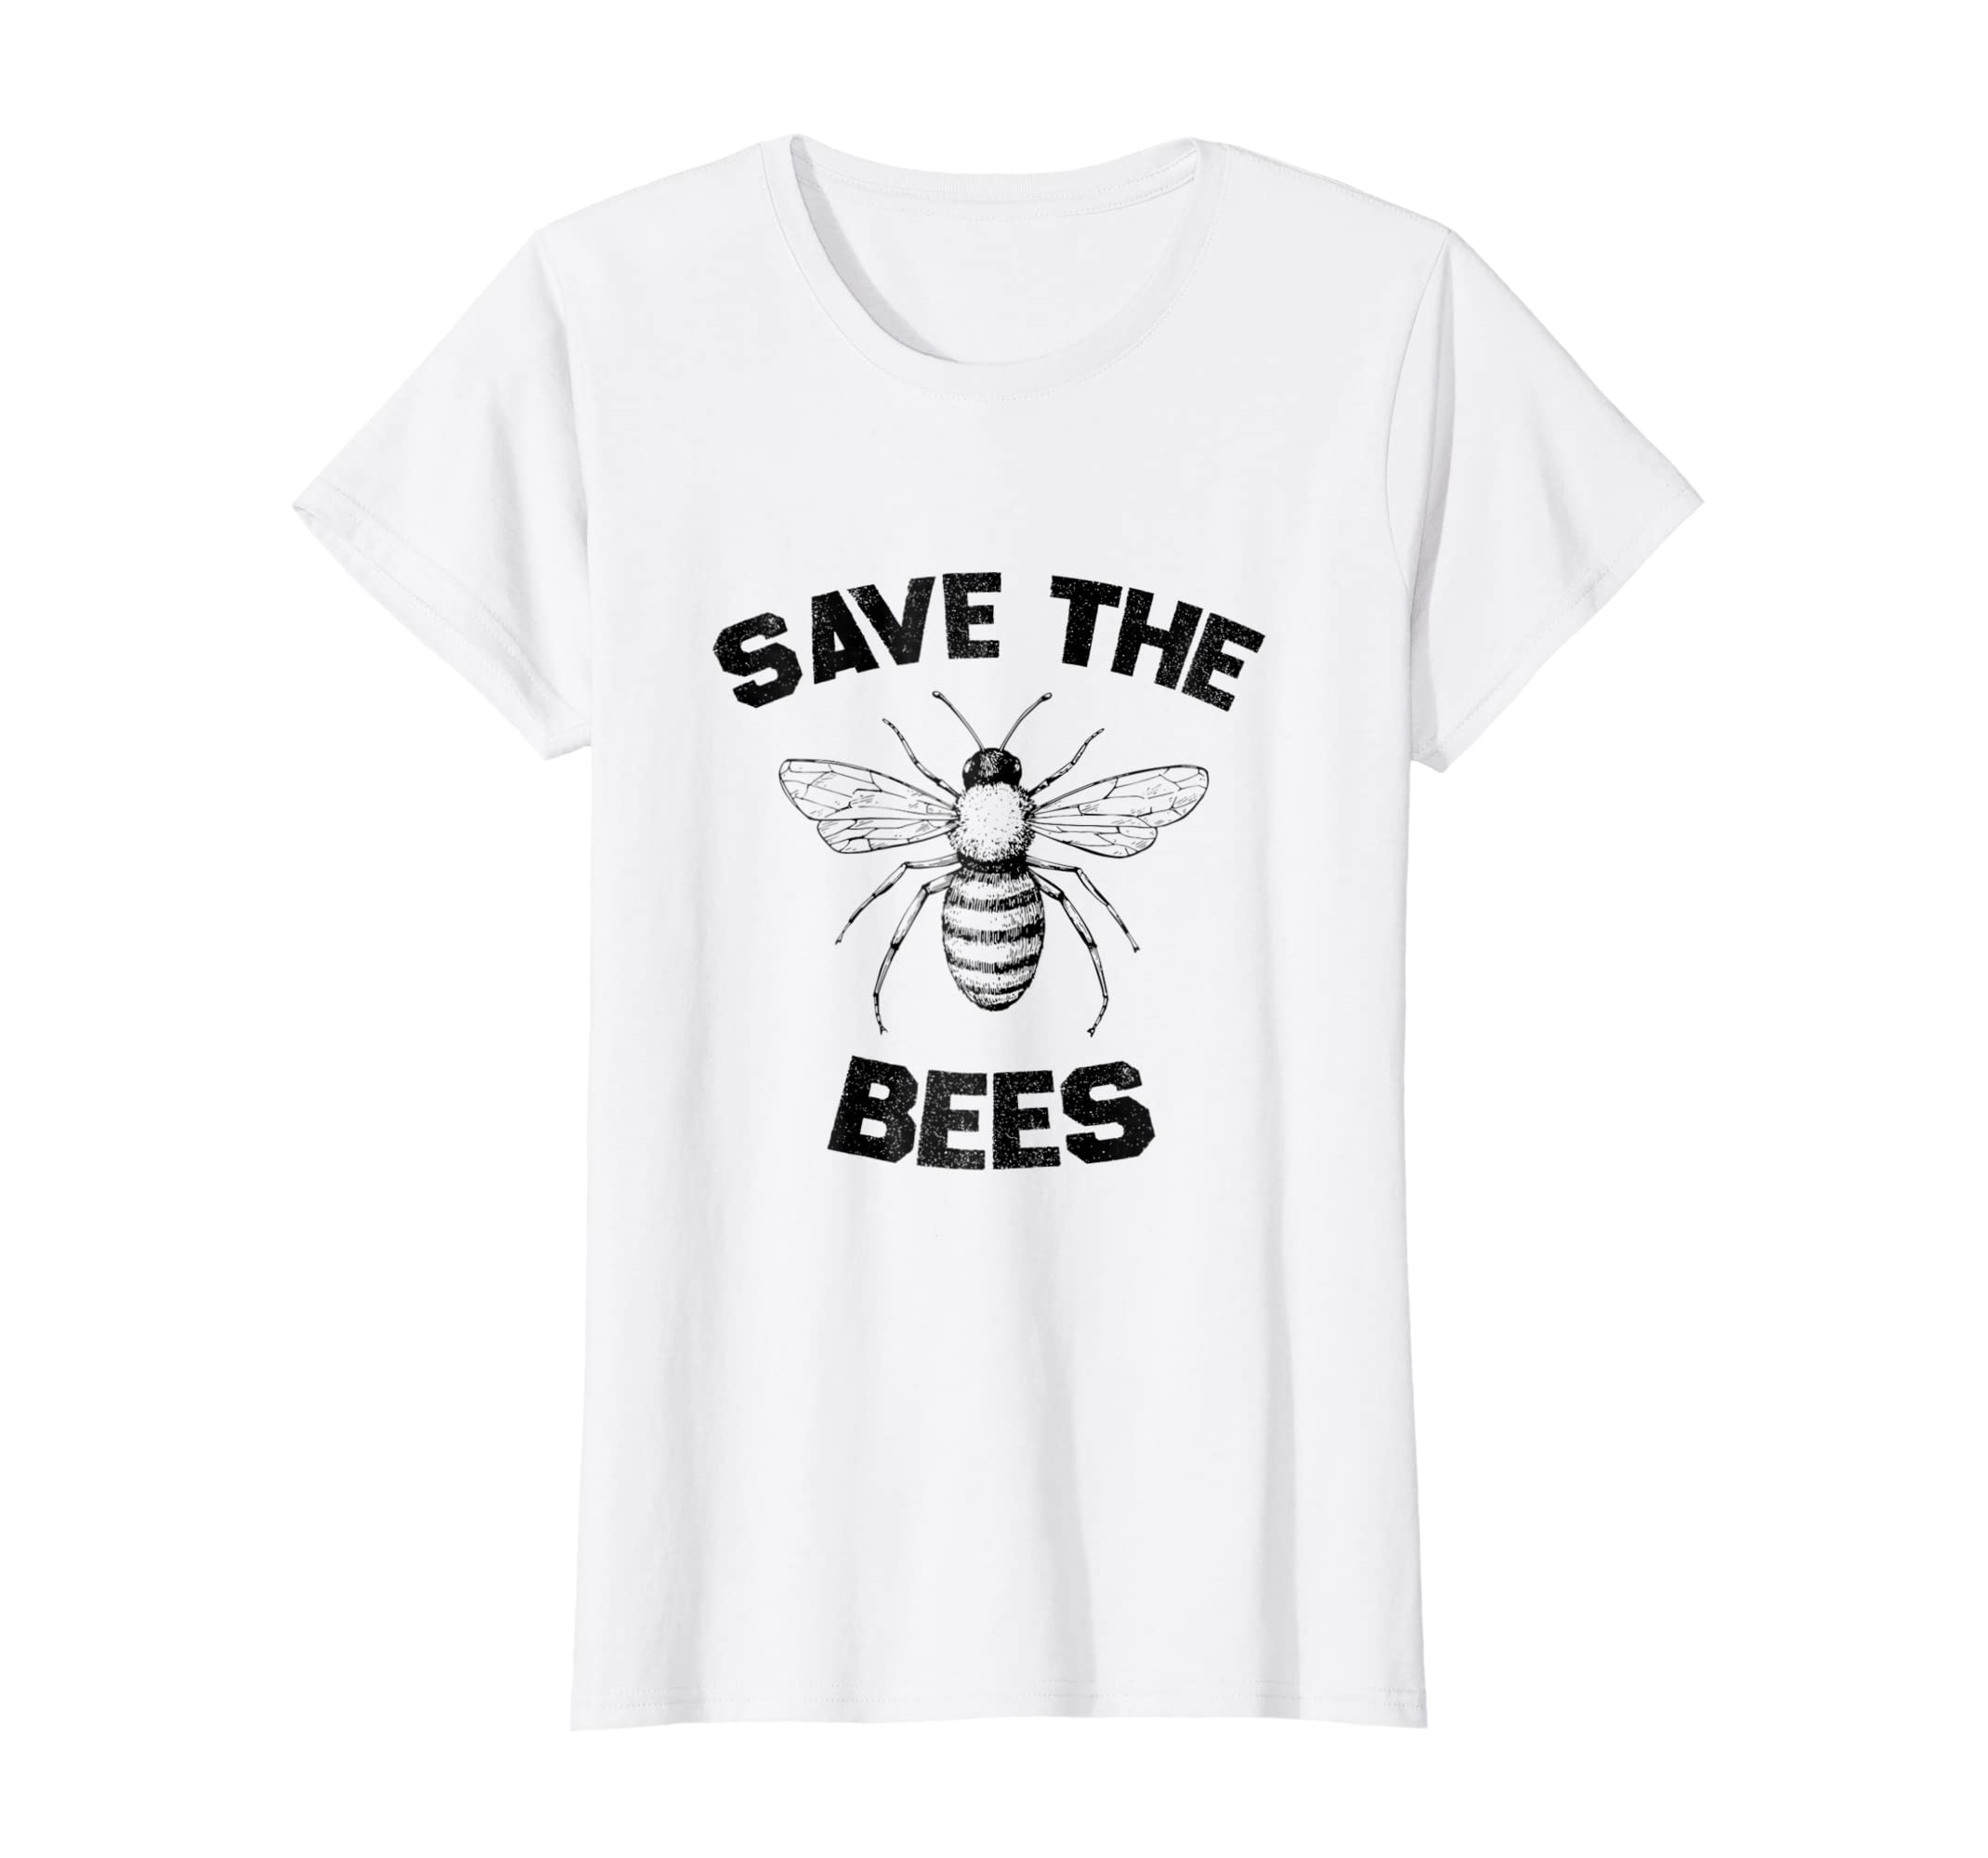 096df8baac706 Amazon.com: Save The Bees Shirt: Clothing